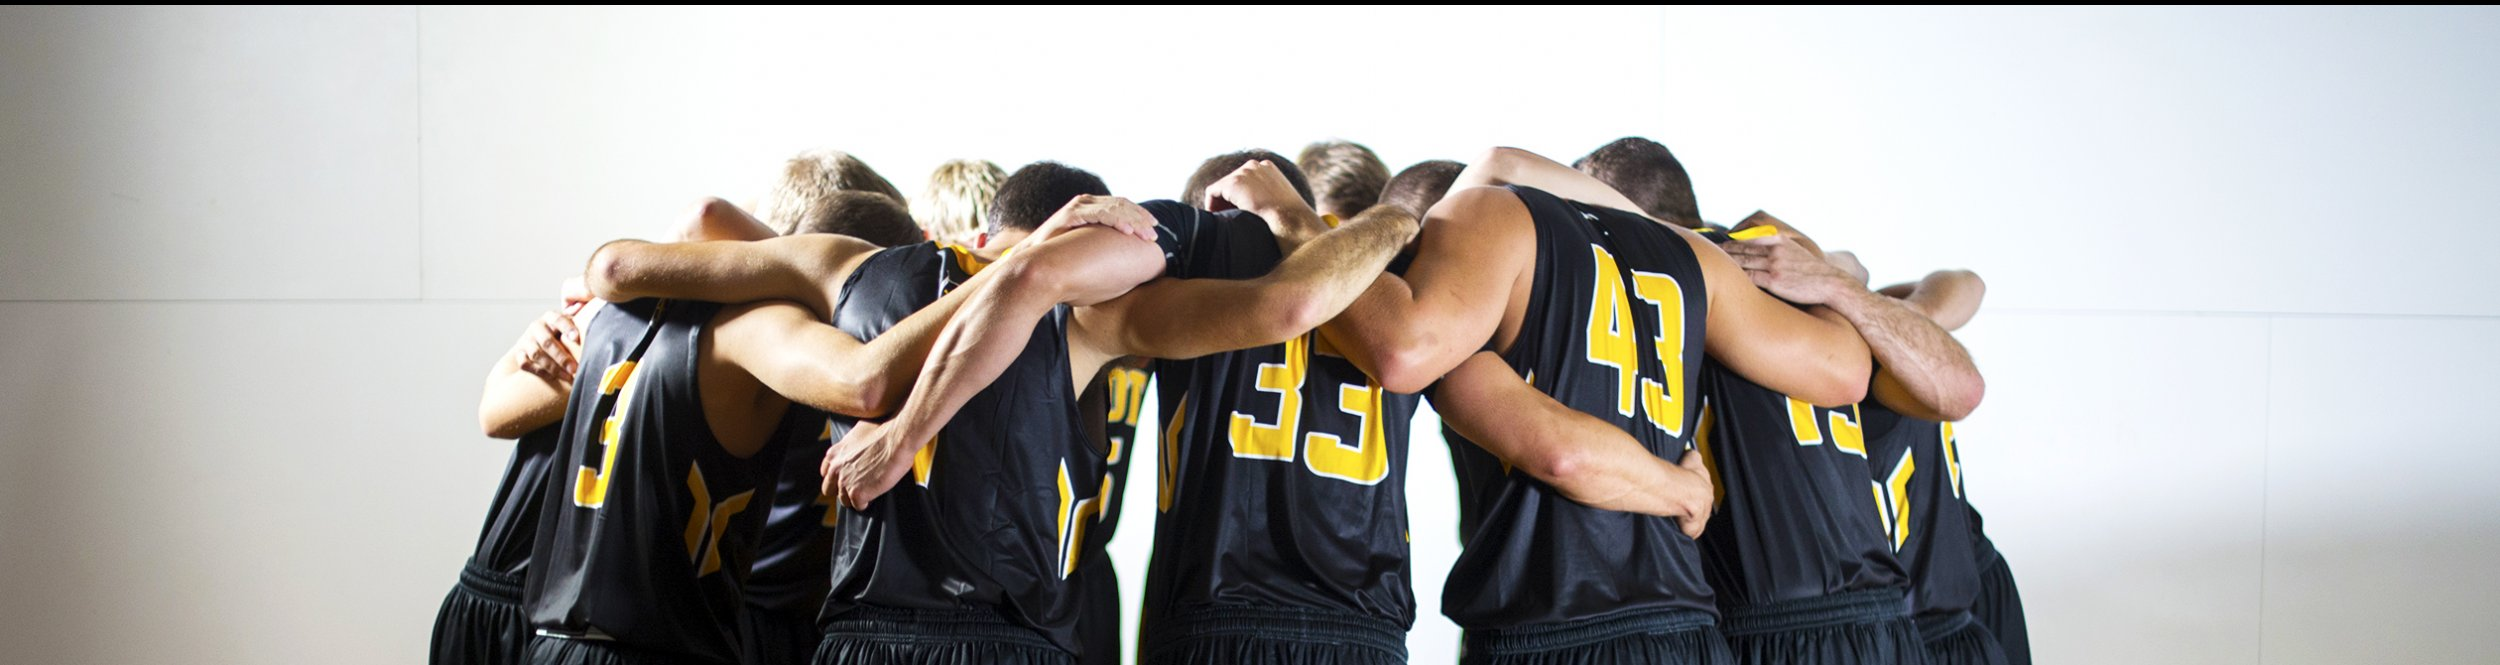 Men's basketball players join together in a huddle.